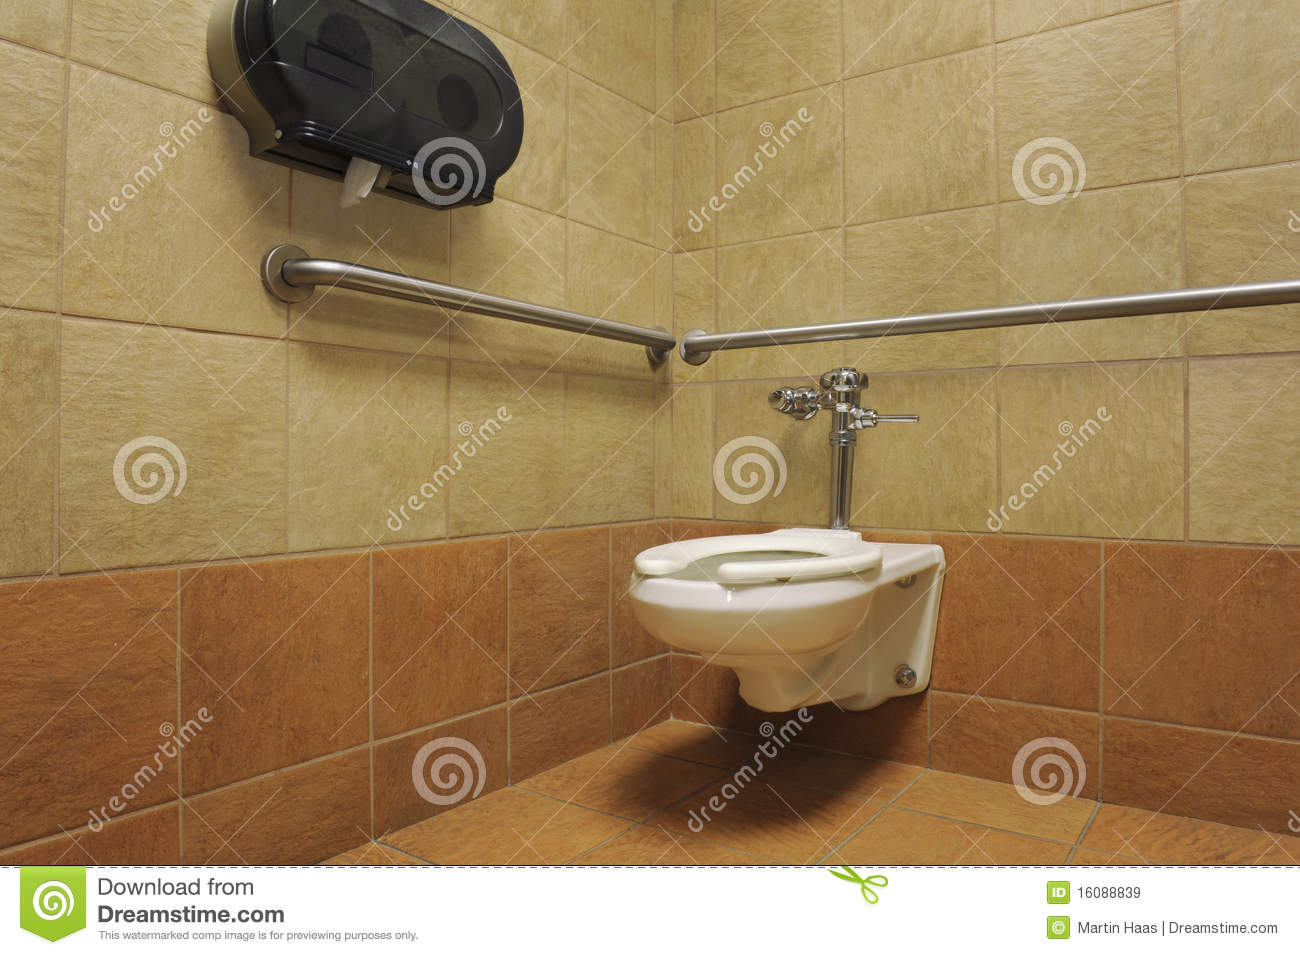 Toilet In A Public Restroom Stall Stock Image Image Of Hygienic - Public bathroom stalls